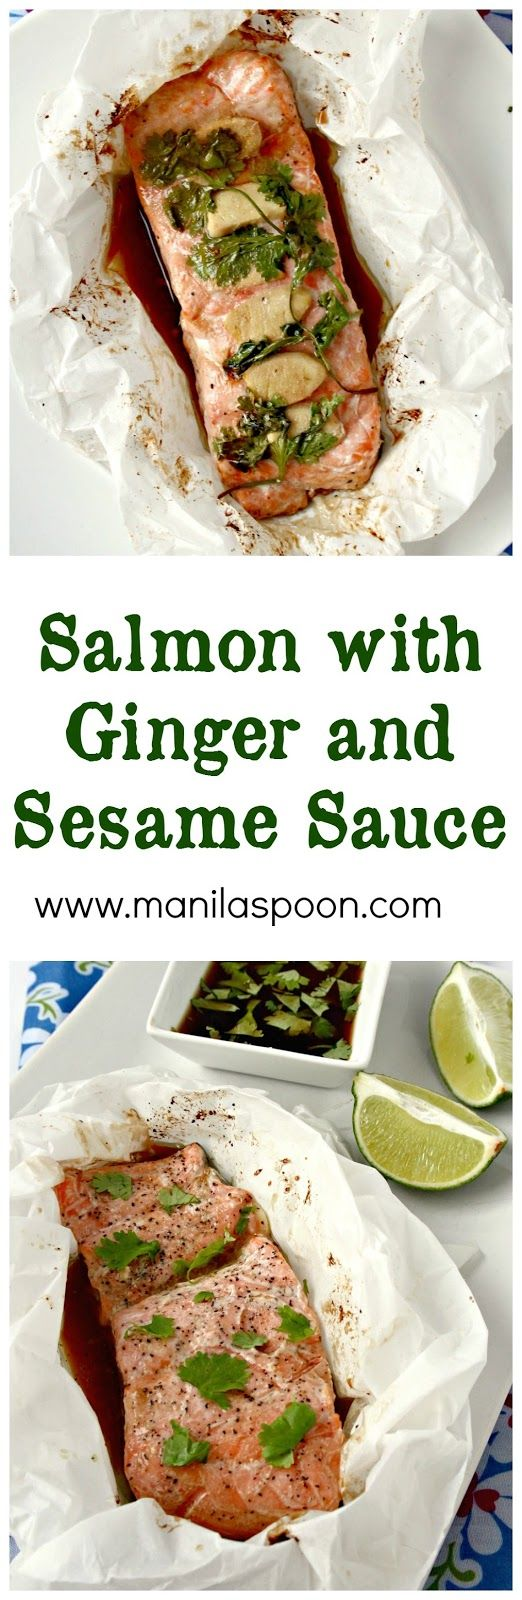 This is the tastiest and juiciest Salmon dish ever! Baked en papillote (in parchment) flavored with ginger and sesame sauce - this baked salmon is the ultimate fish dish for my family!